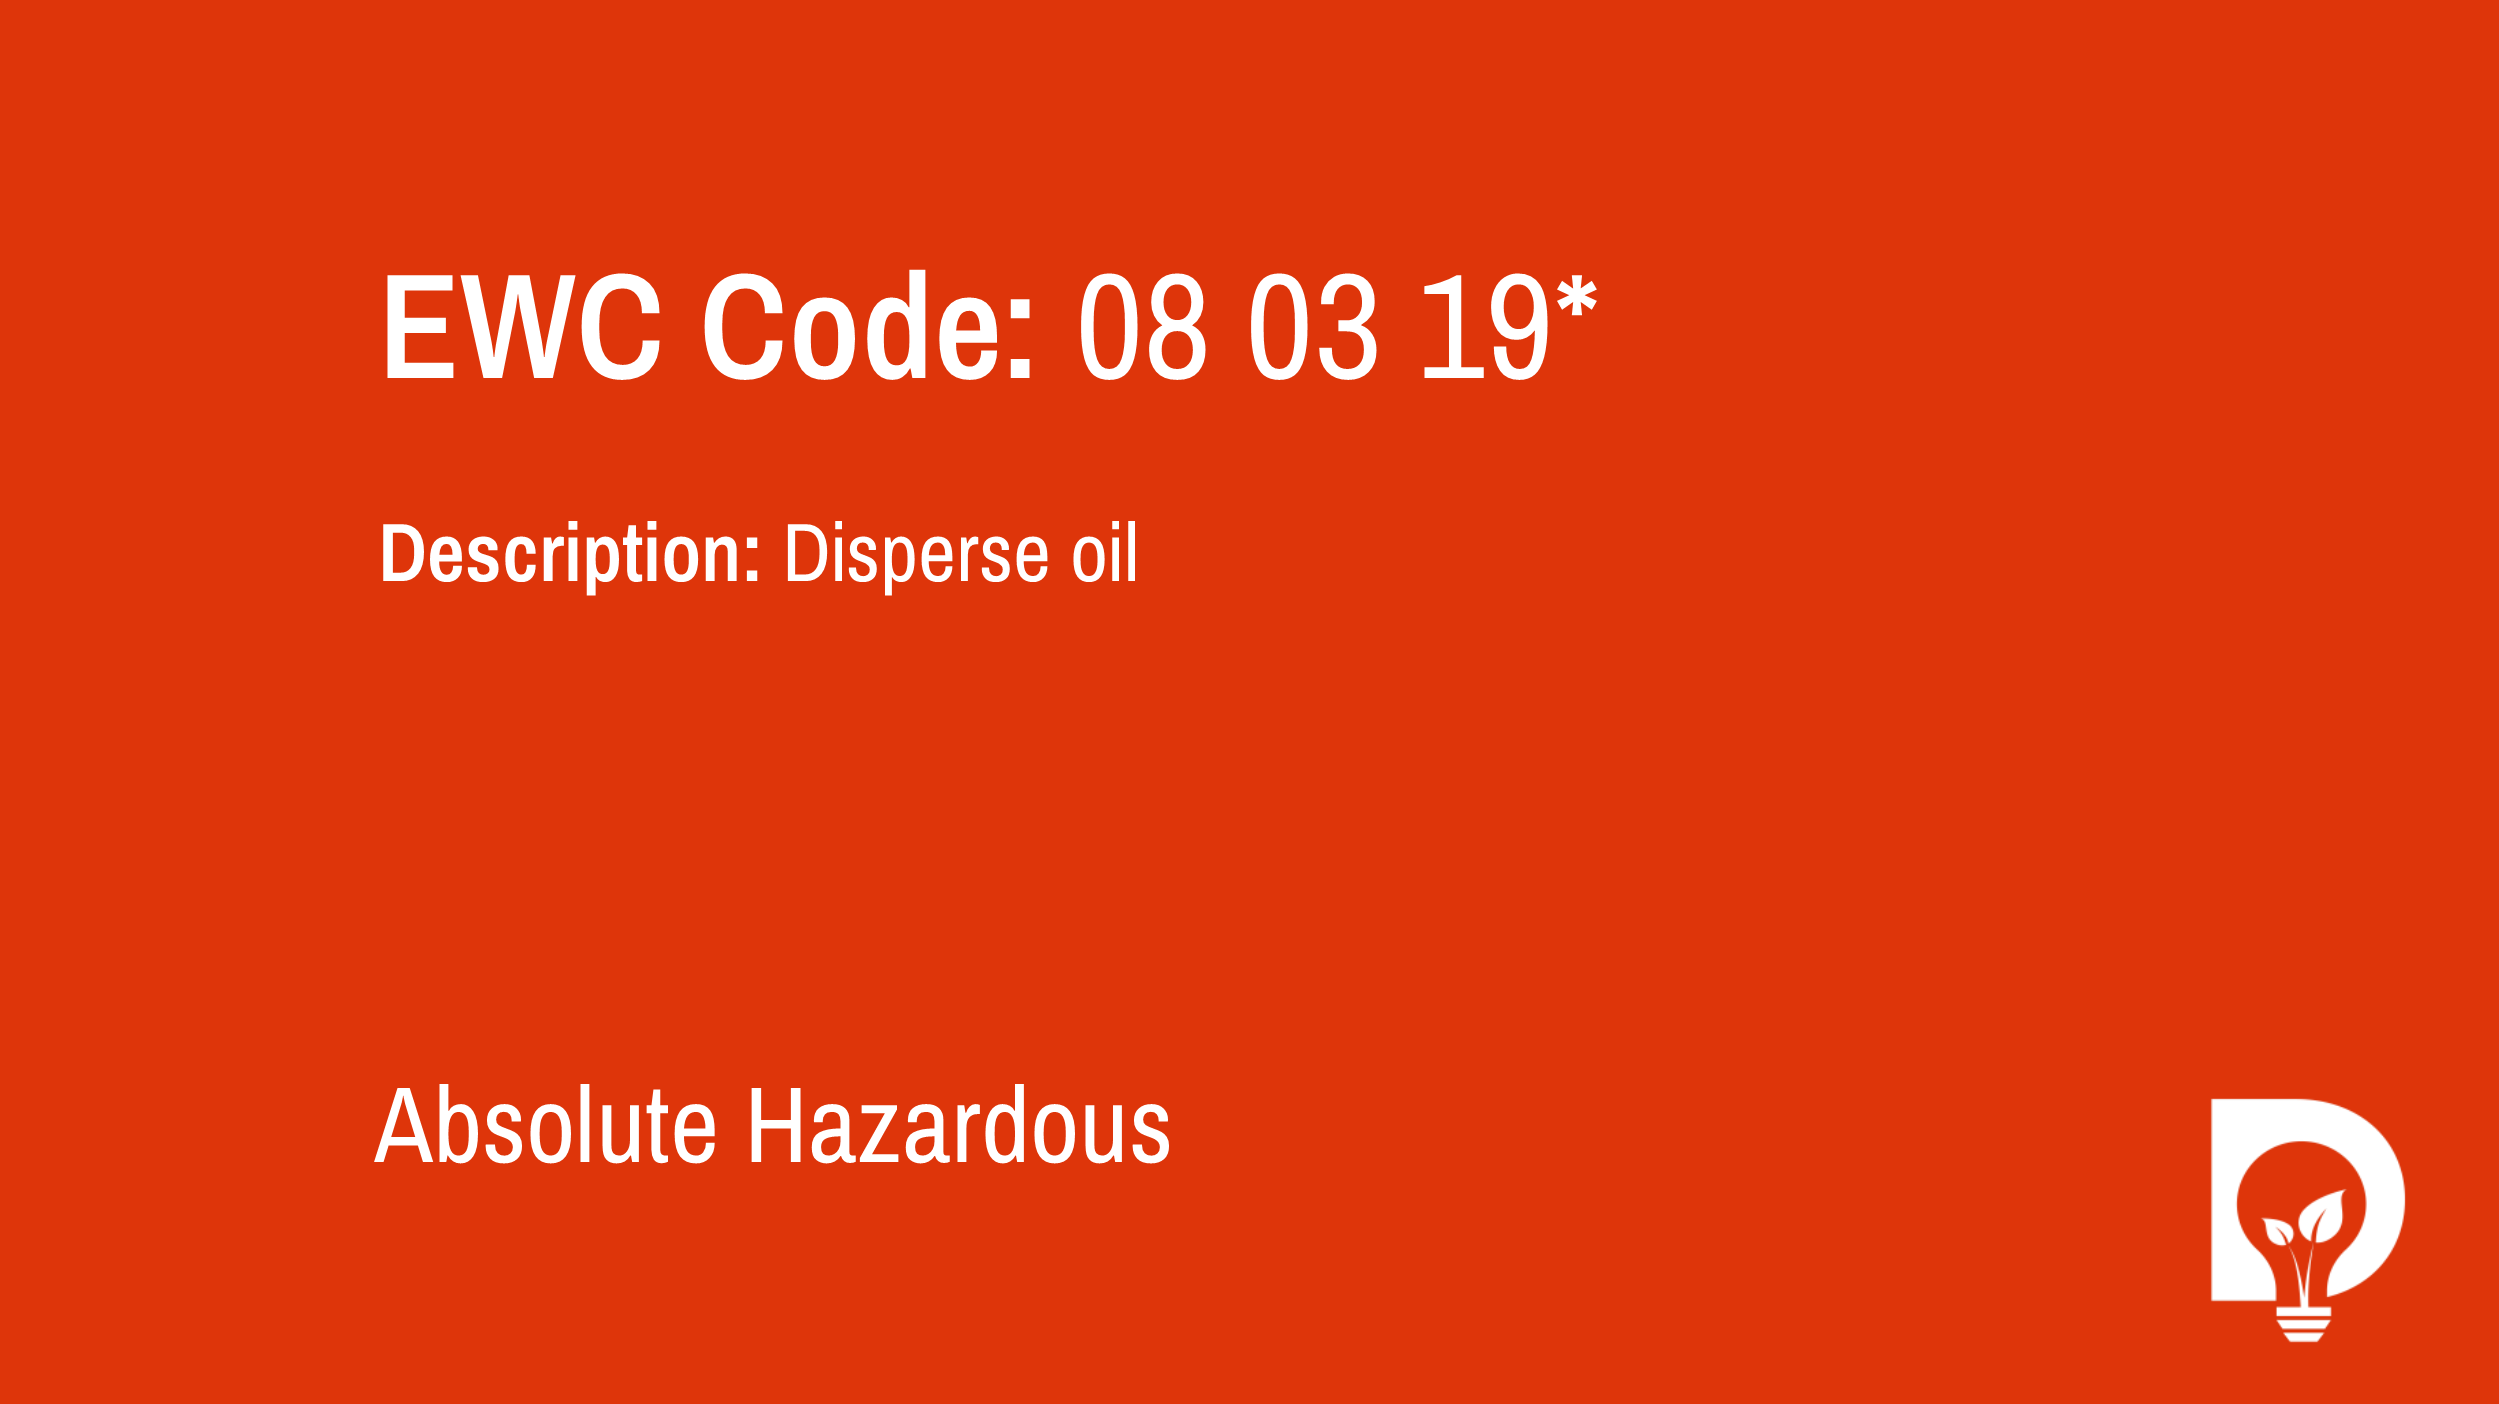 EWC Code: 08 03 19* - disperse oil. Type: Absolute Hazardous. Image by Dsposal